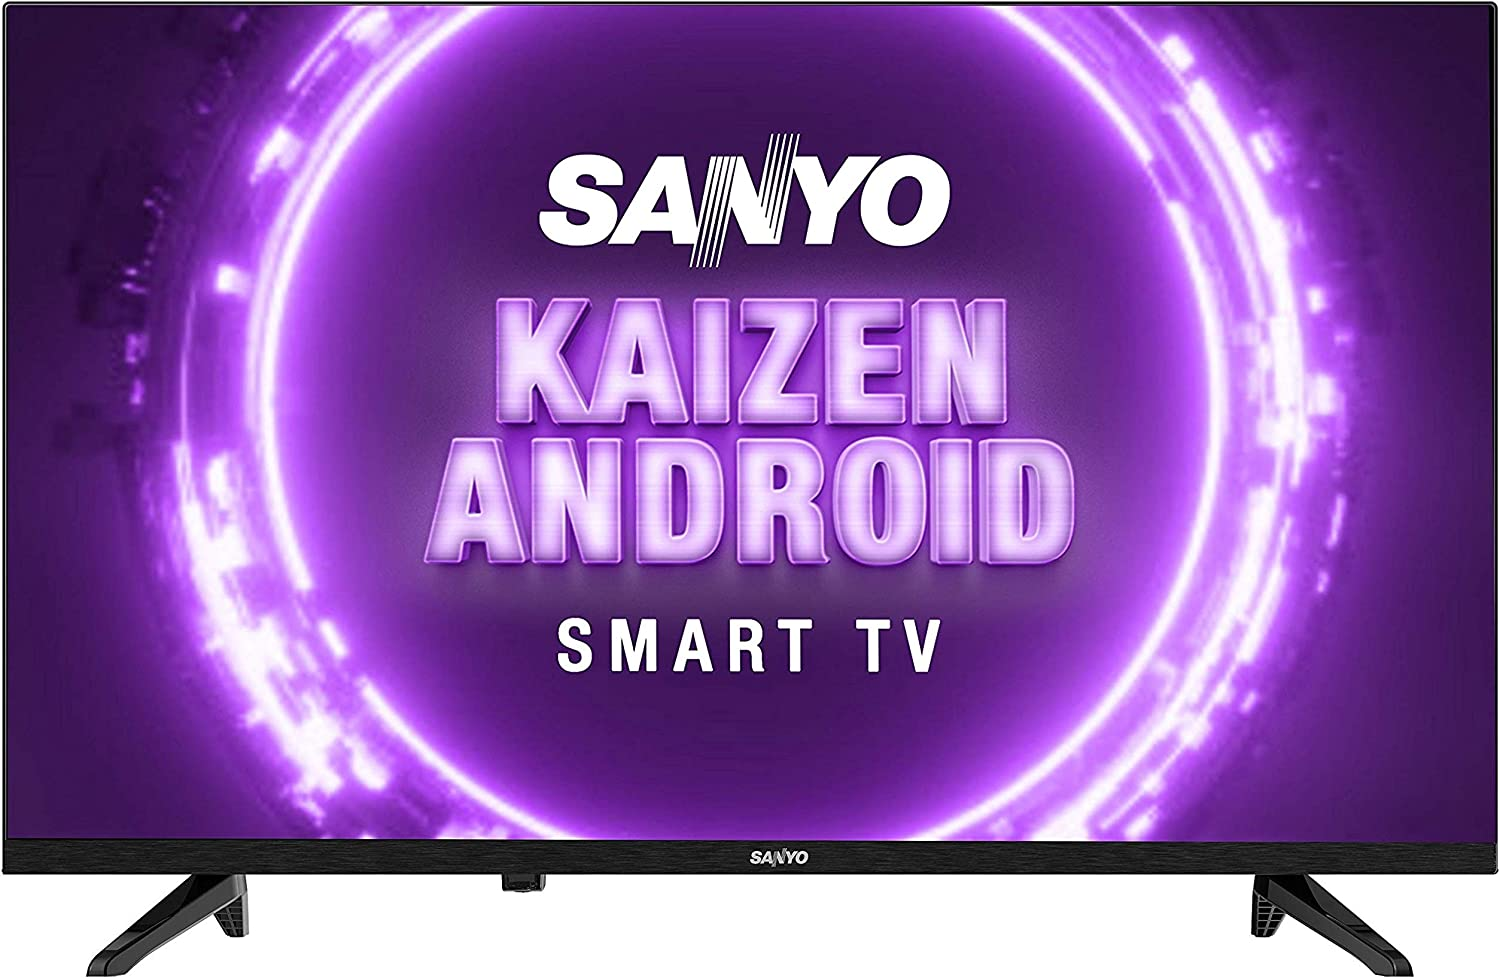 sanyo 32 inch android tvs